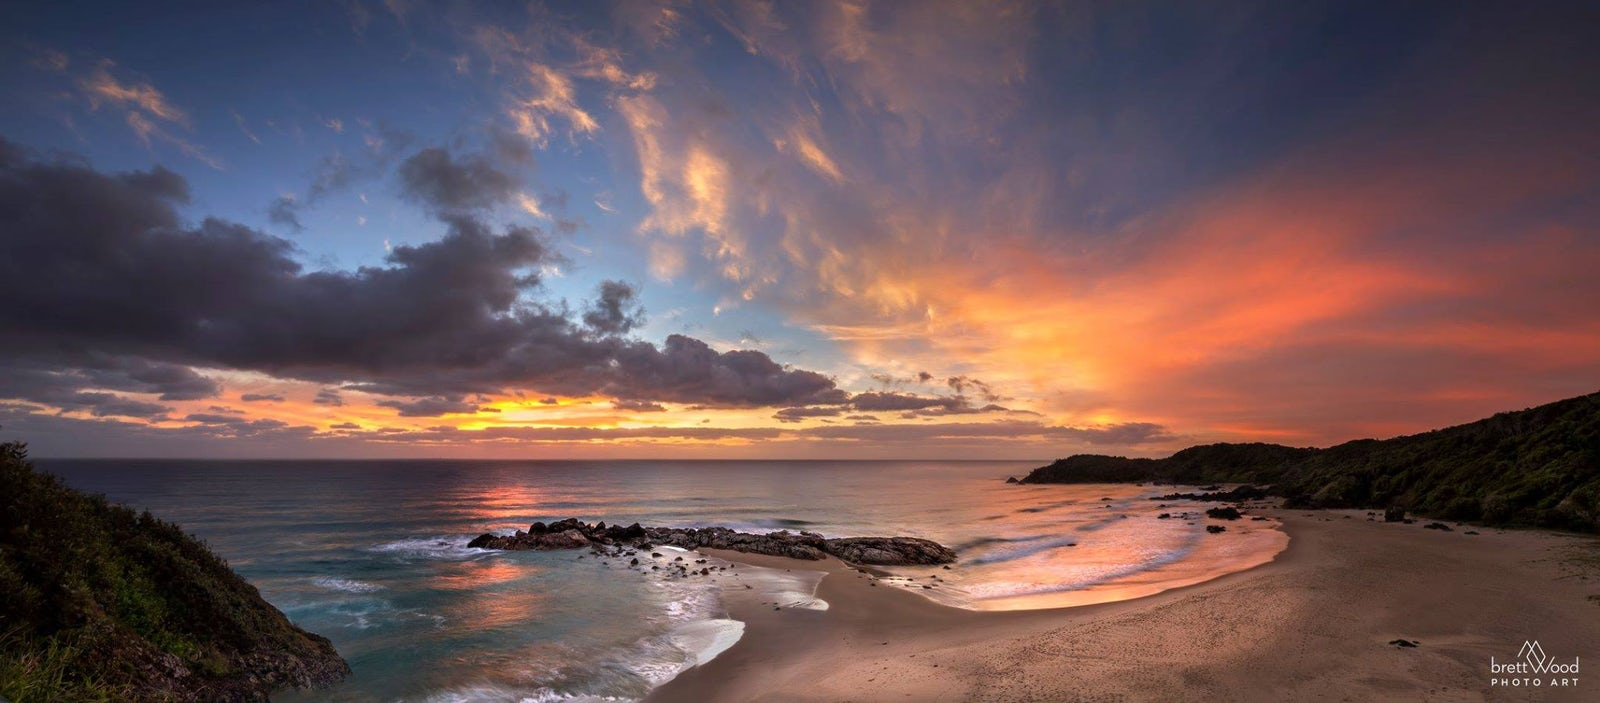 Sun Set across a port macquarie beach